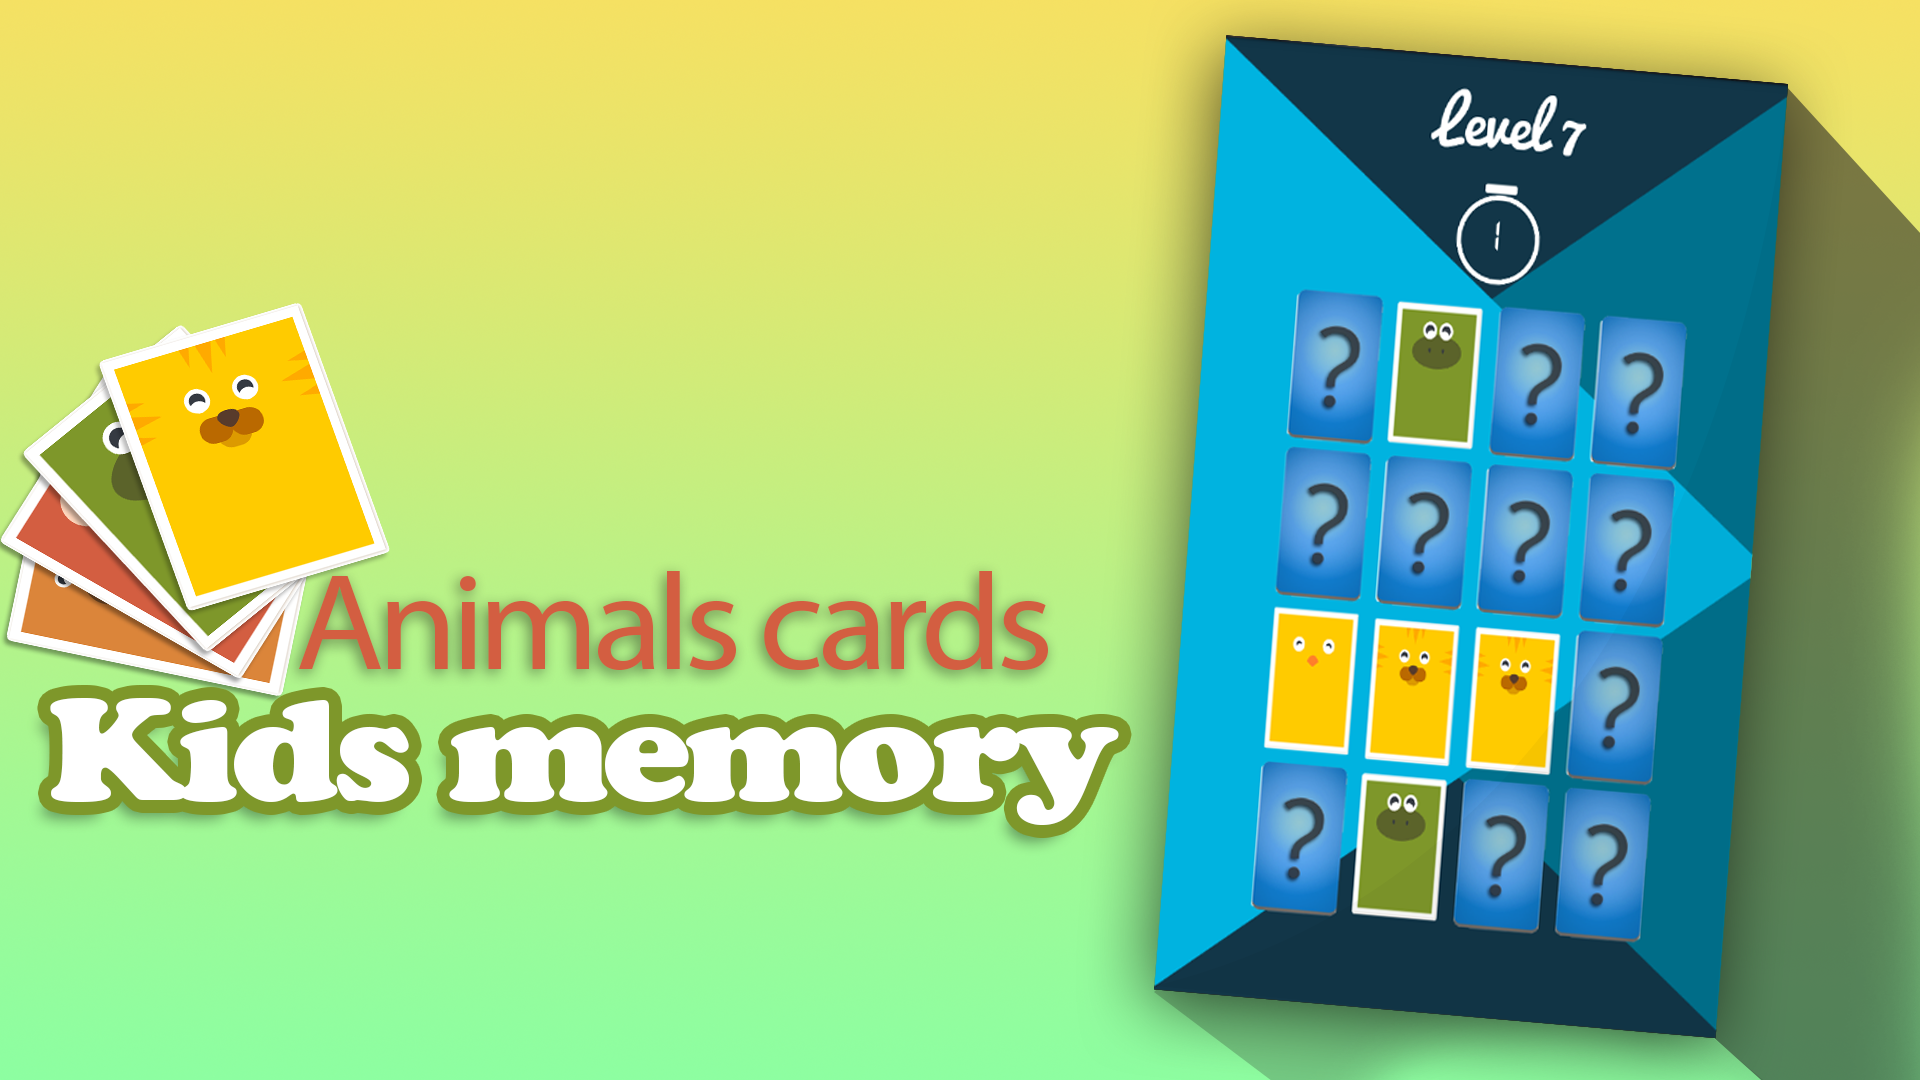 Kids memory: Animals cards